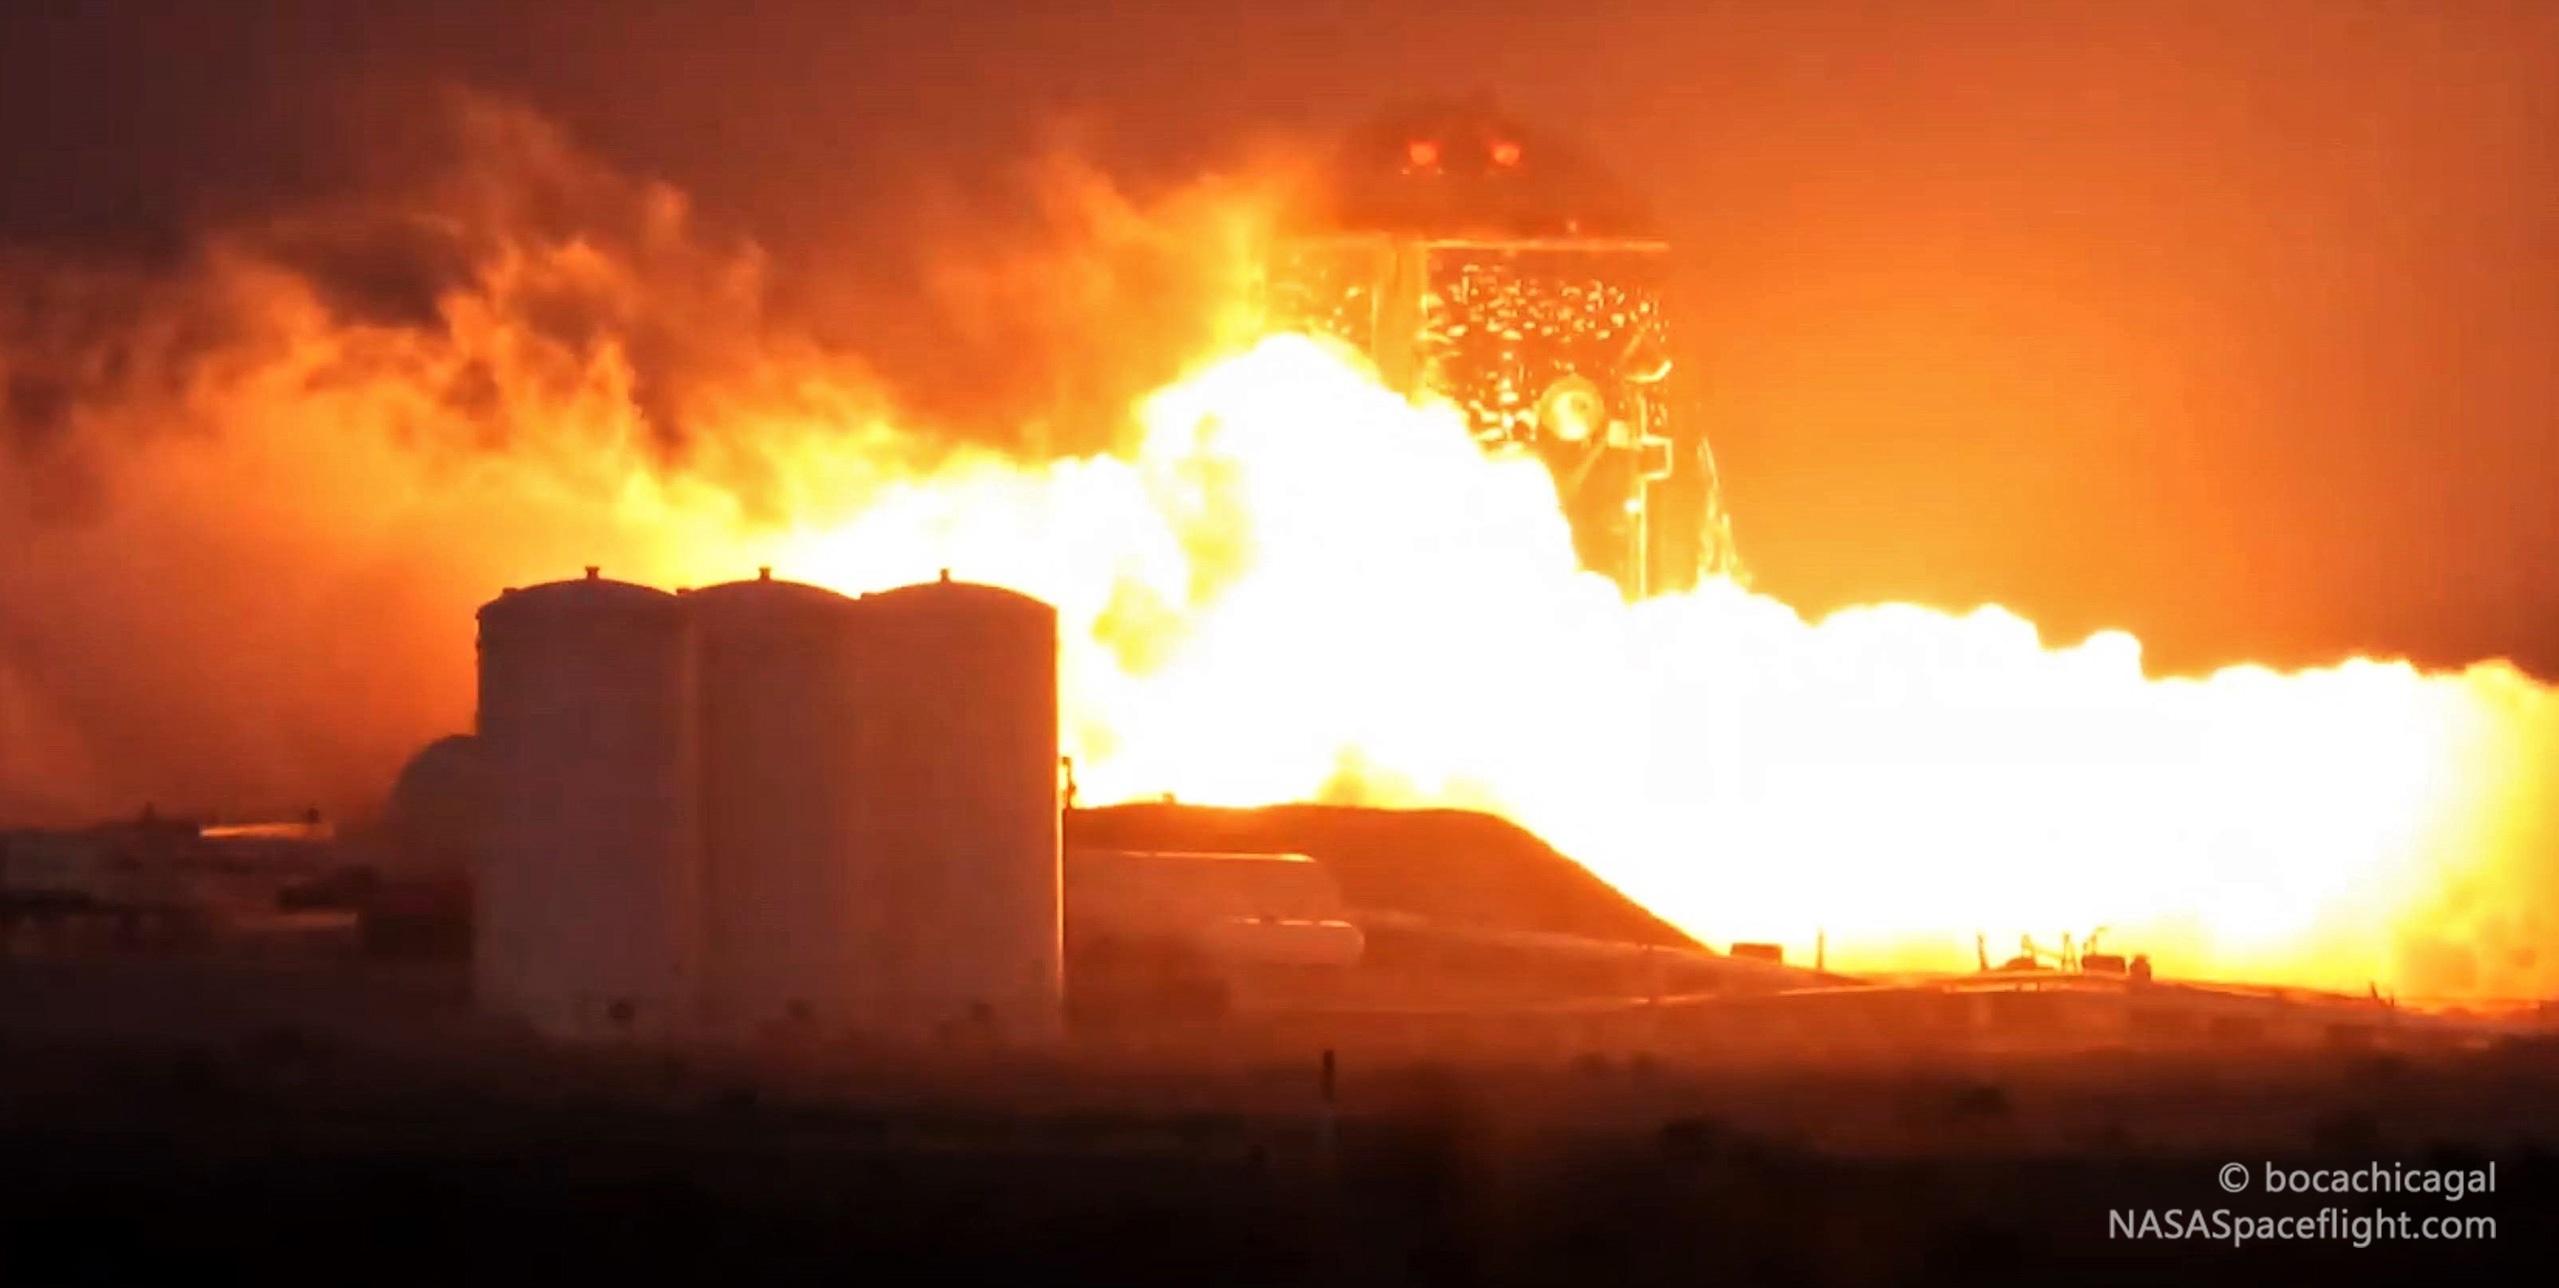 Boca Chica Starhopper Raptor ignition 040319 (NASASpaceflight – bocachicagal) 1 edit 1